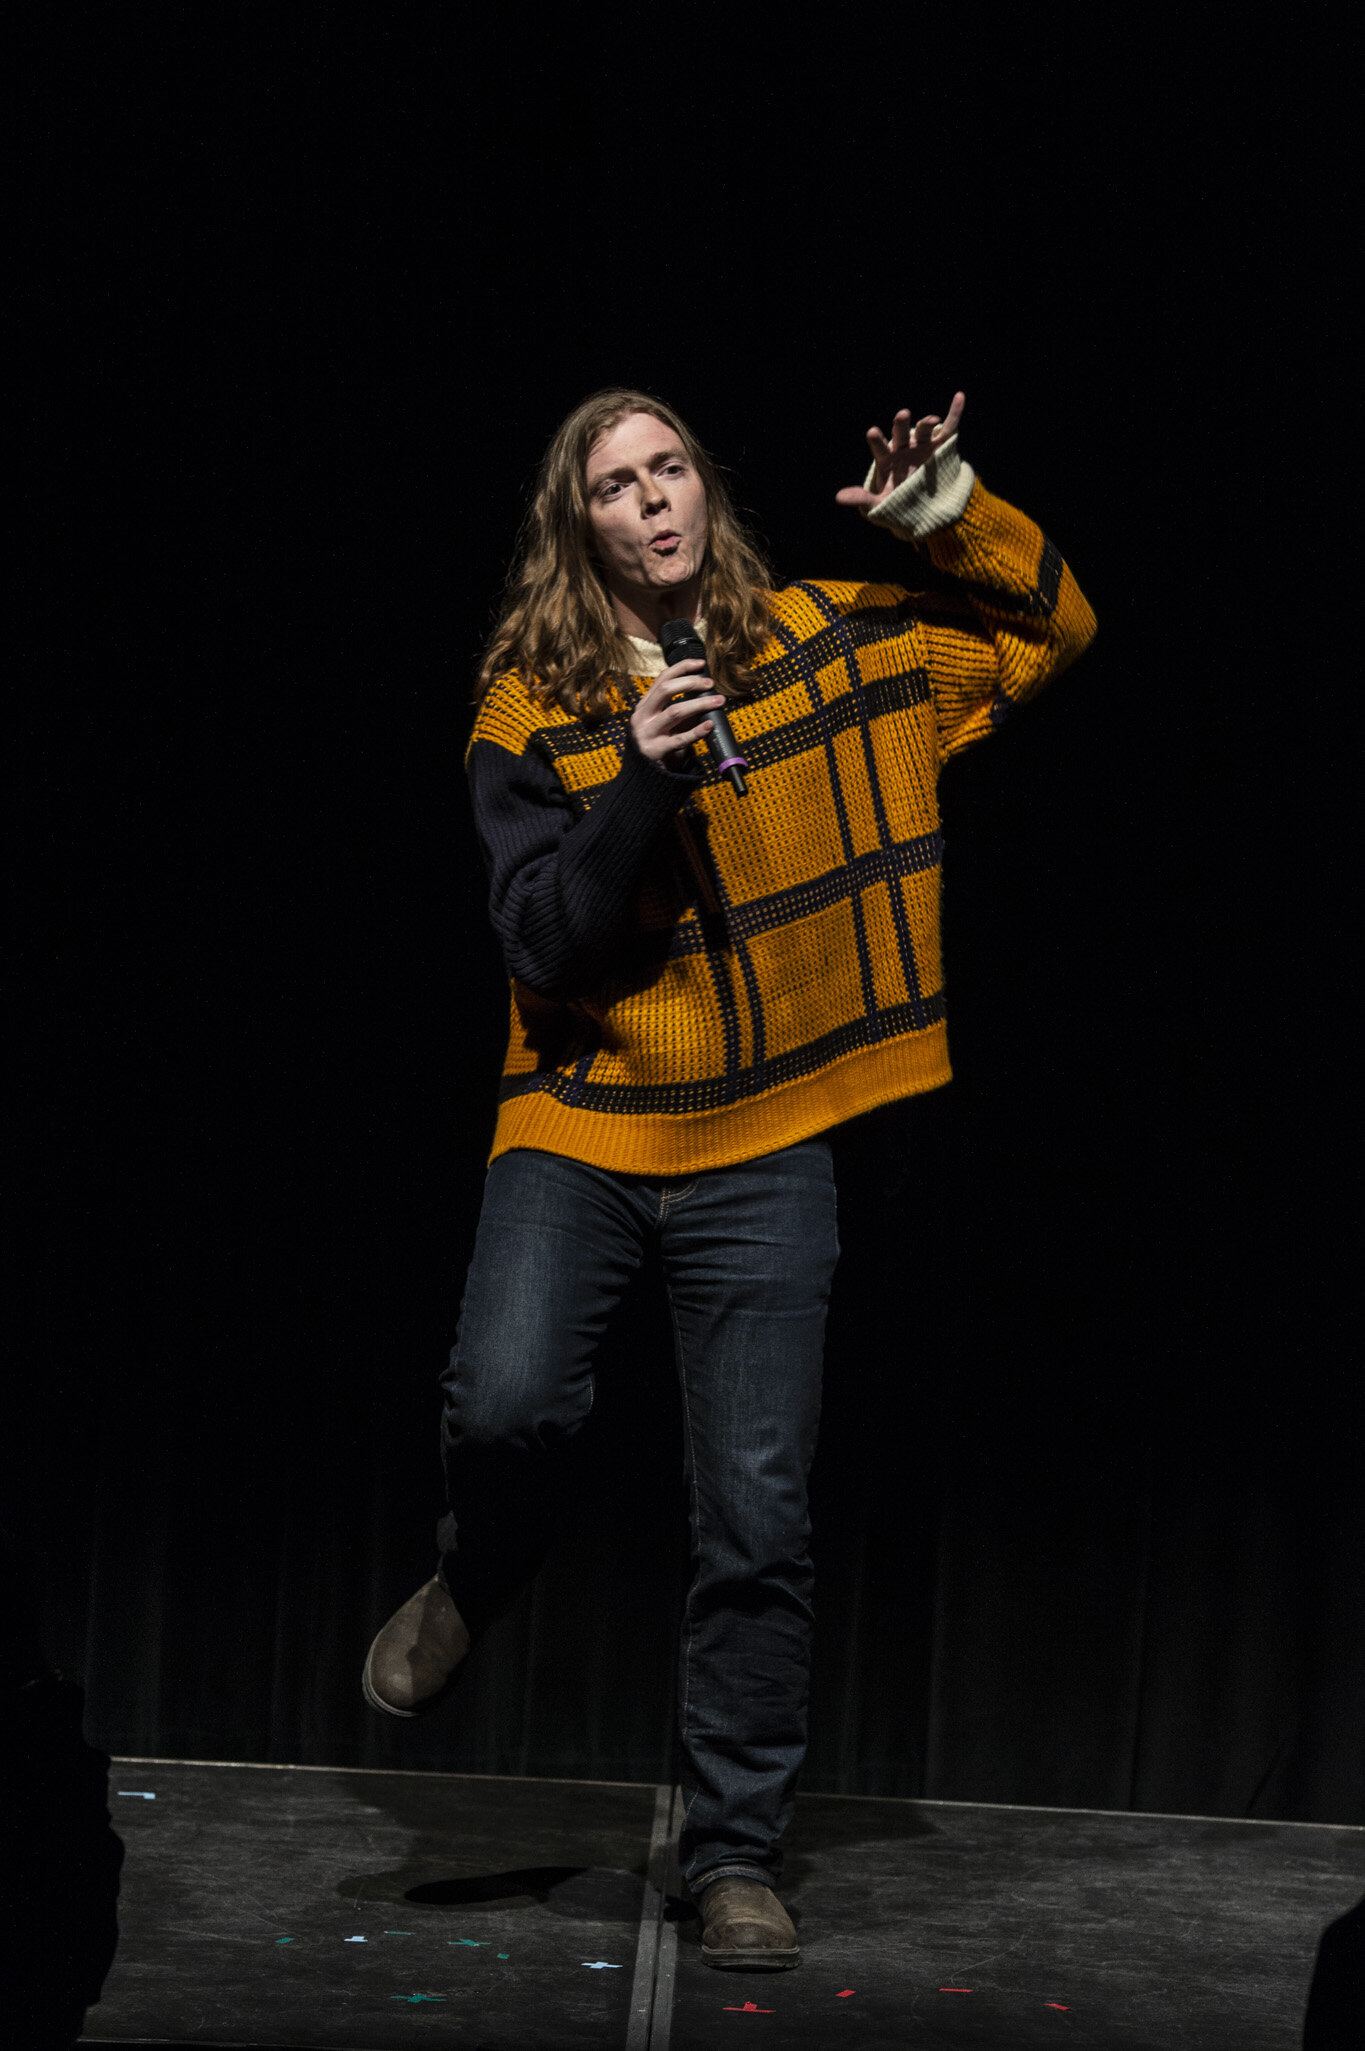 Photo credit: Banff Centre for Arts and Creativity, 2019.